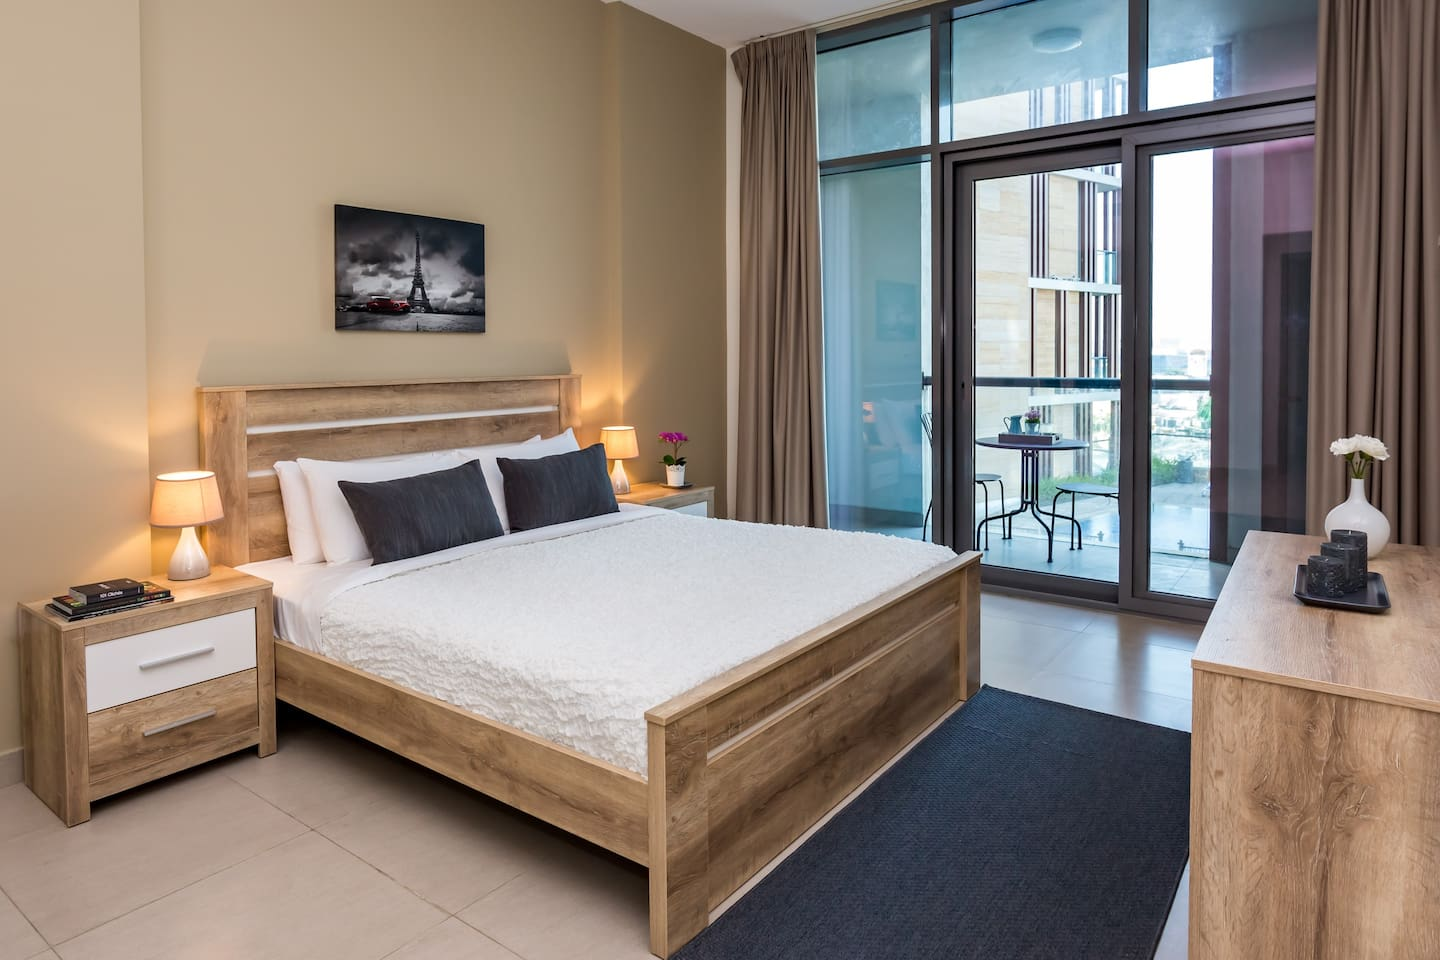 A spacious bedroom has access to the balcony which in return helps to fill the room with natural light